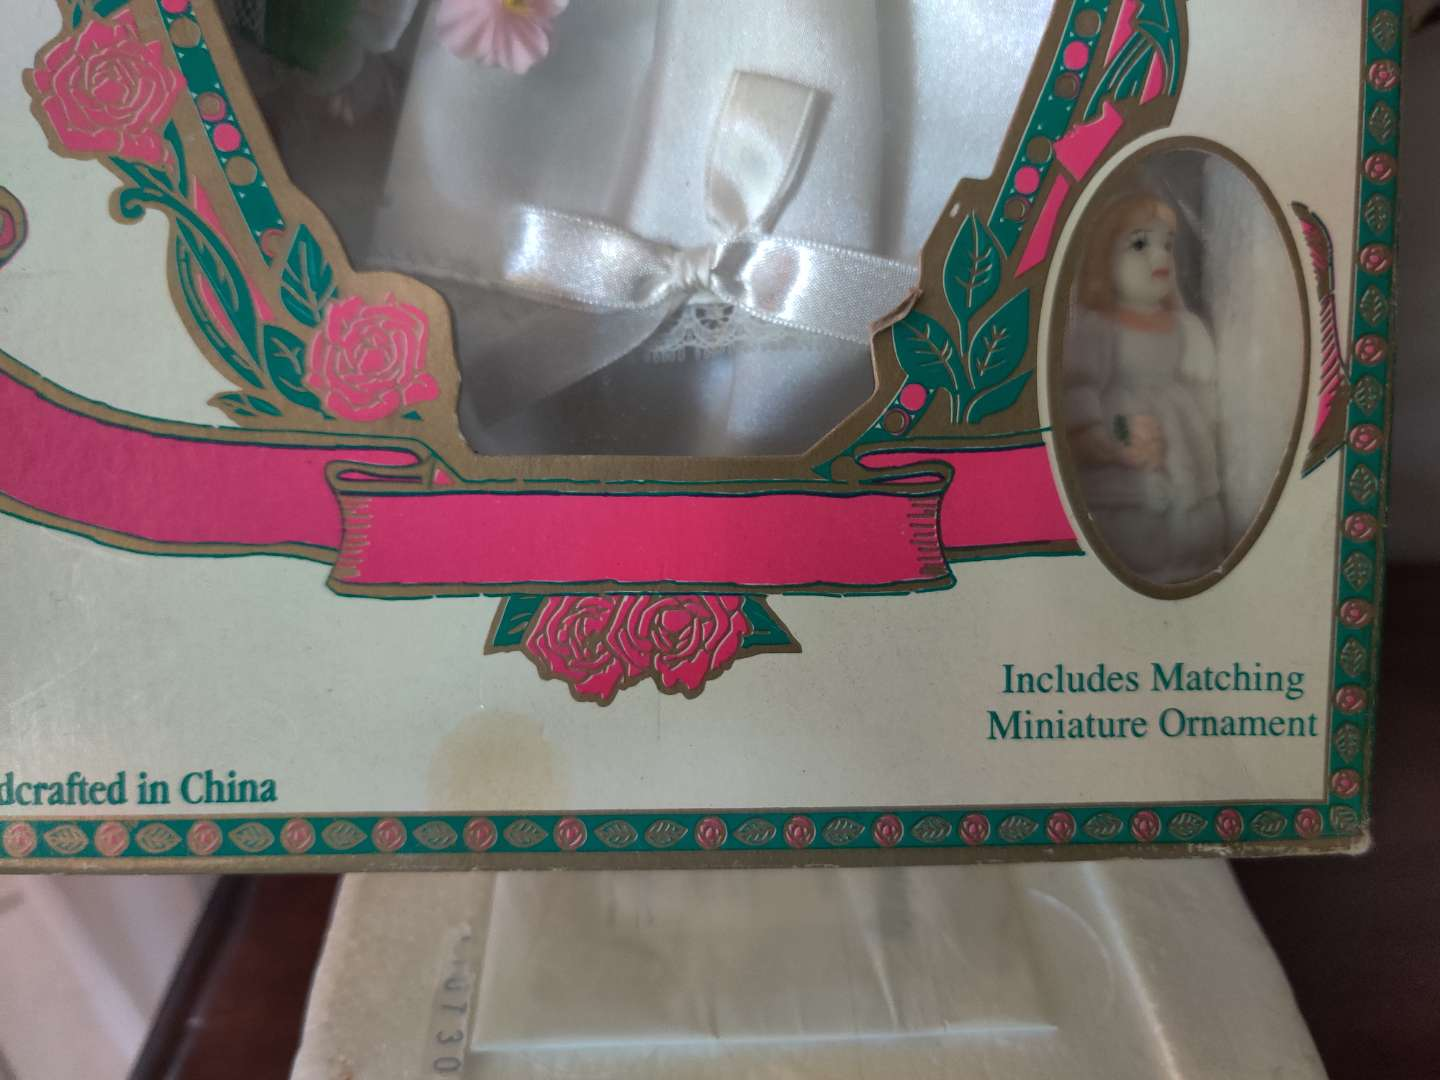 378 limited edition collector's doll in box never removed